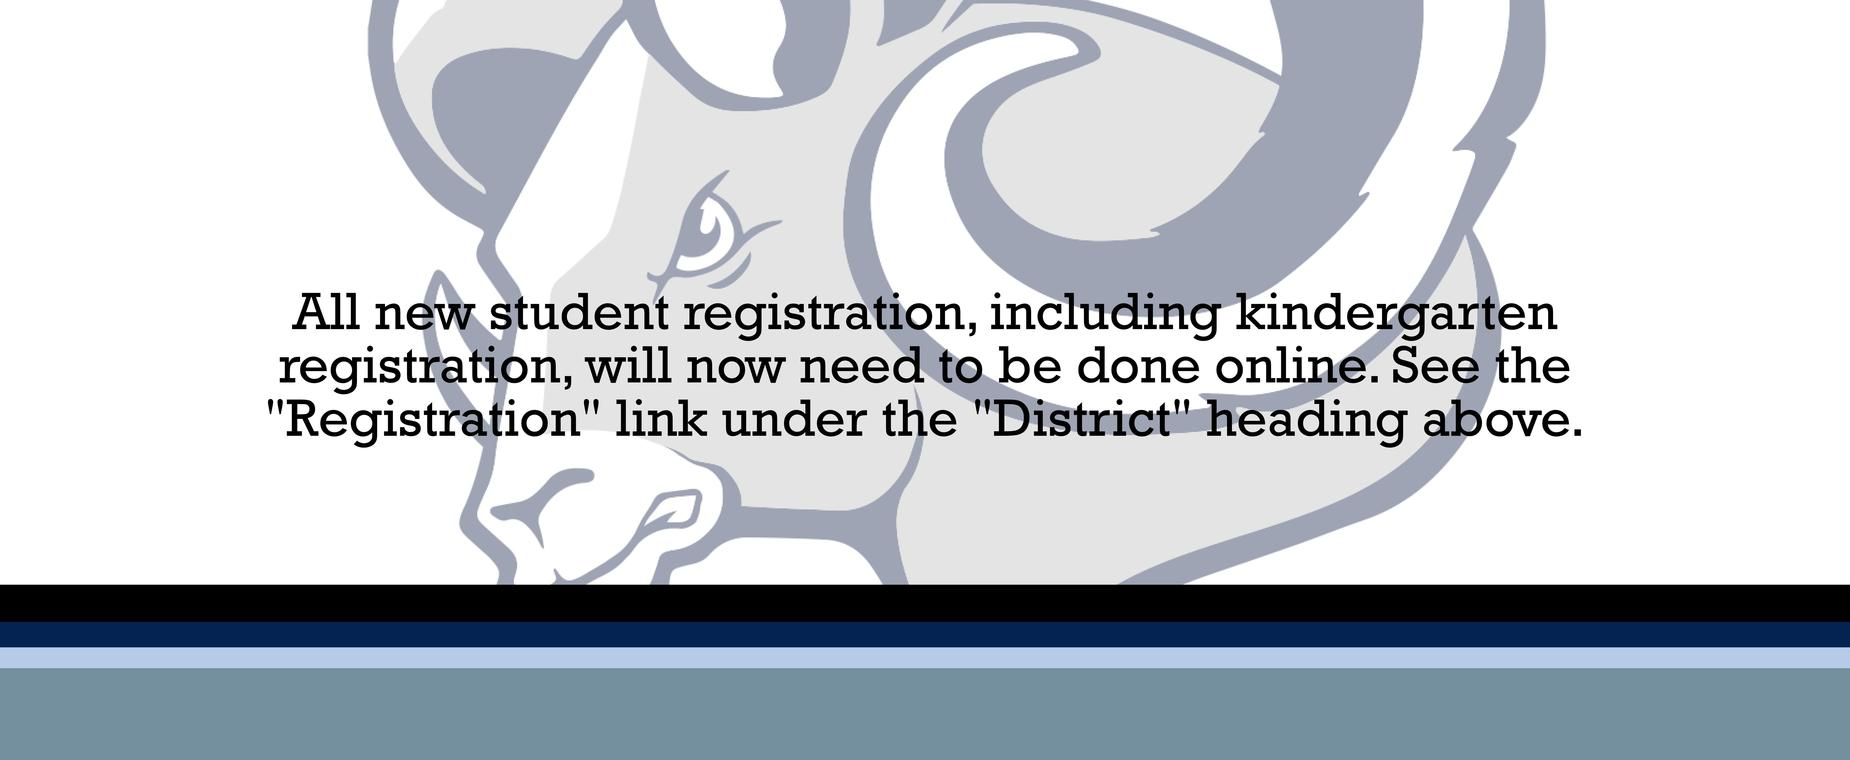 All new student registration, including kindergarten registration will now be done solely online. See the